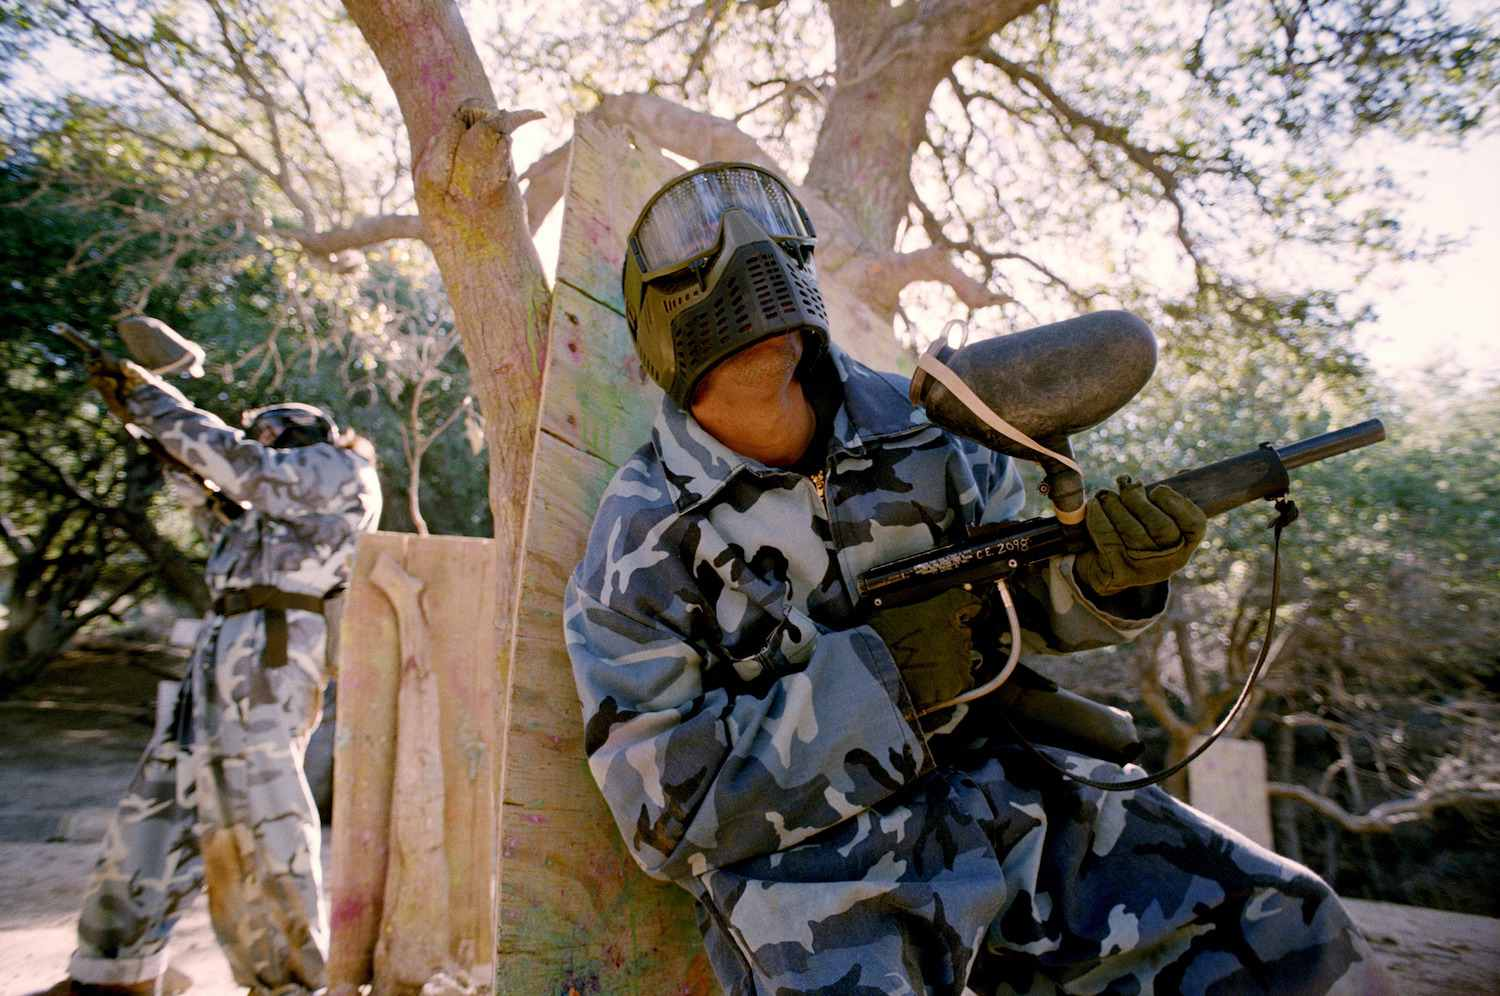 Men in camouflage holding paint guns